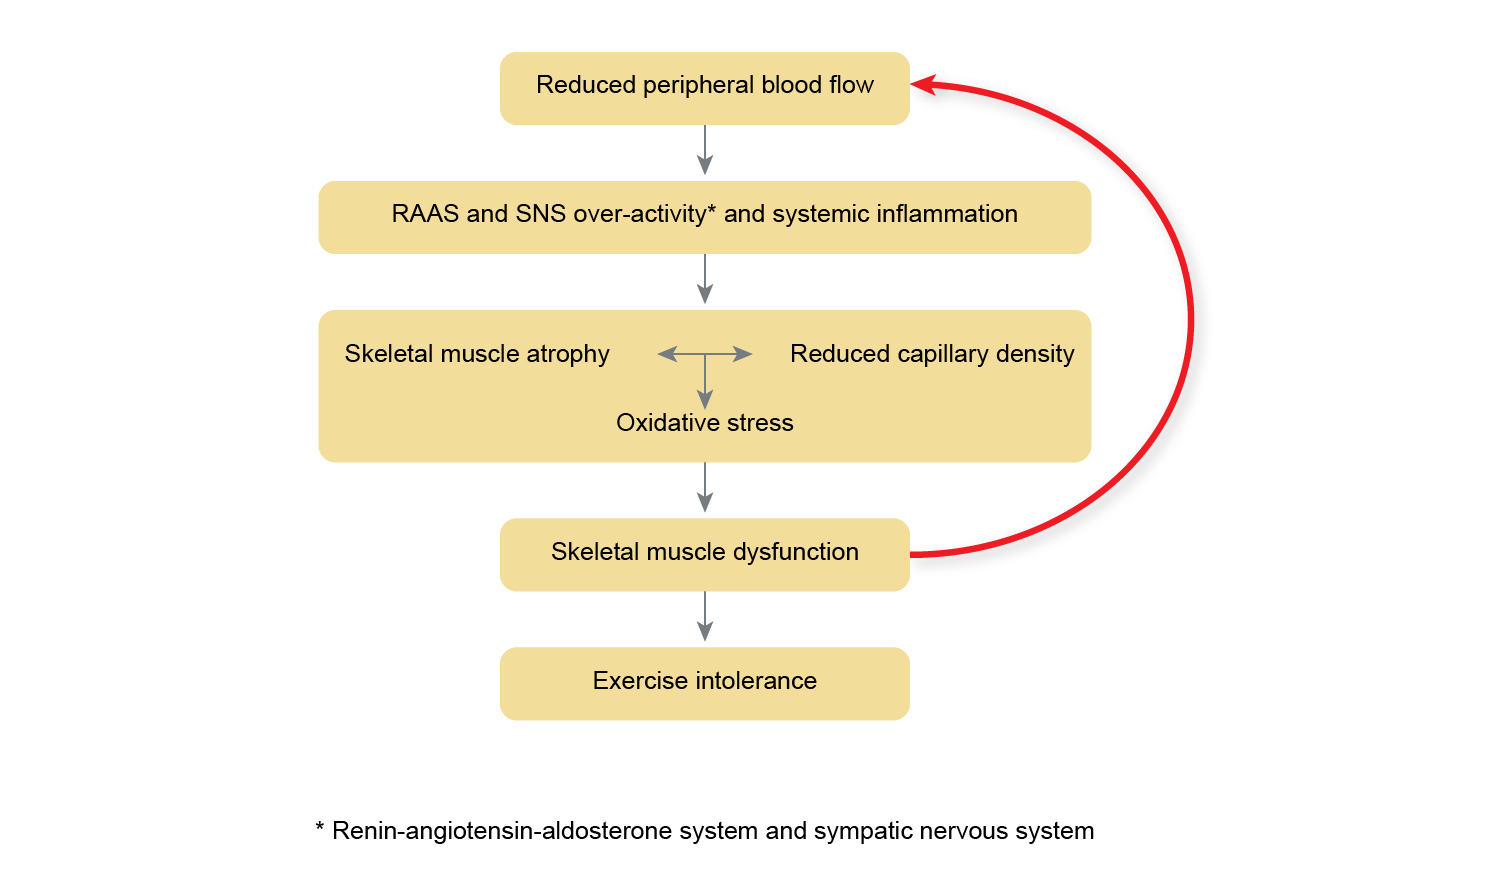 Skeletal muscle dysfunction diagram